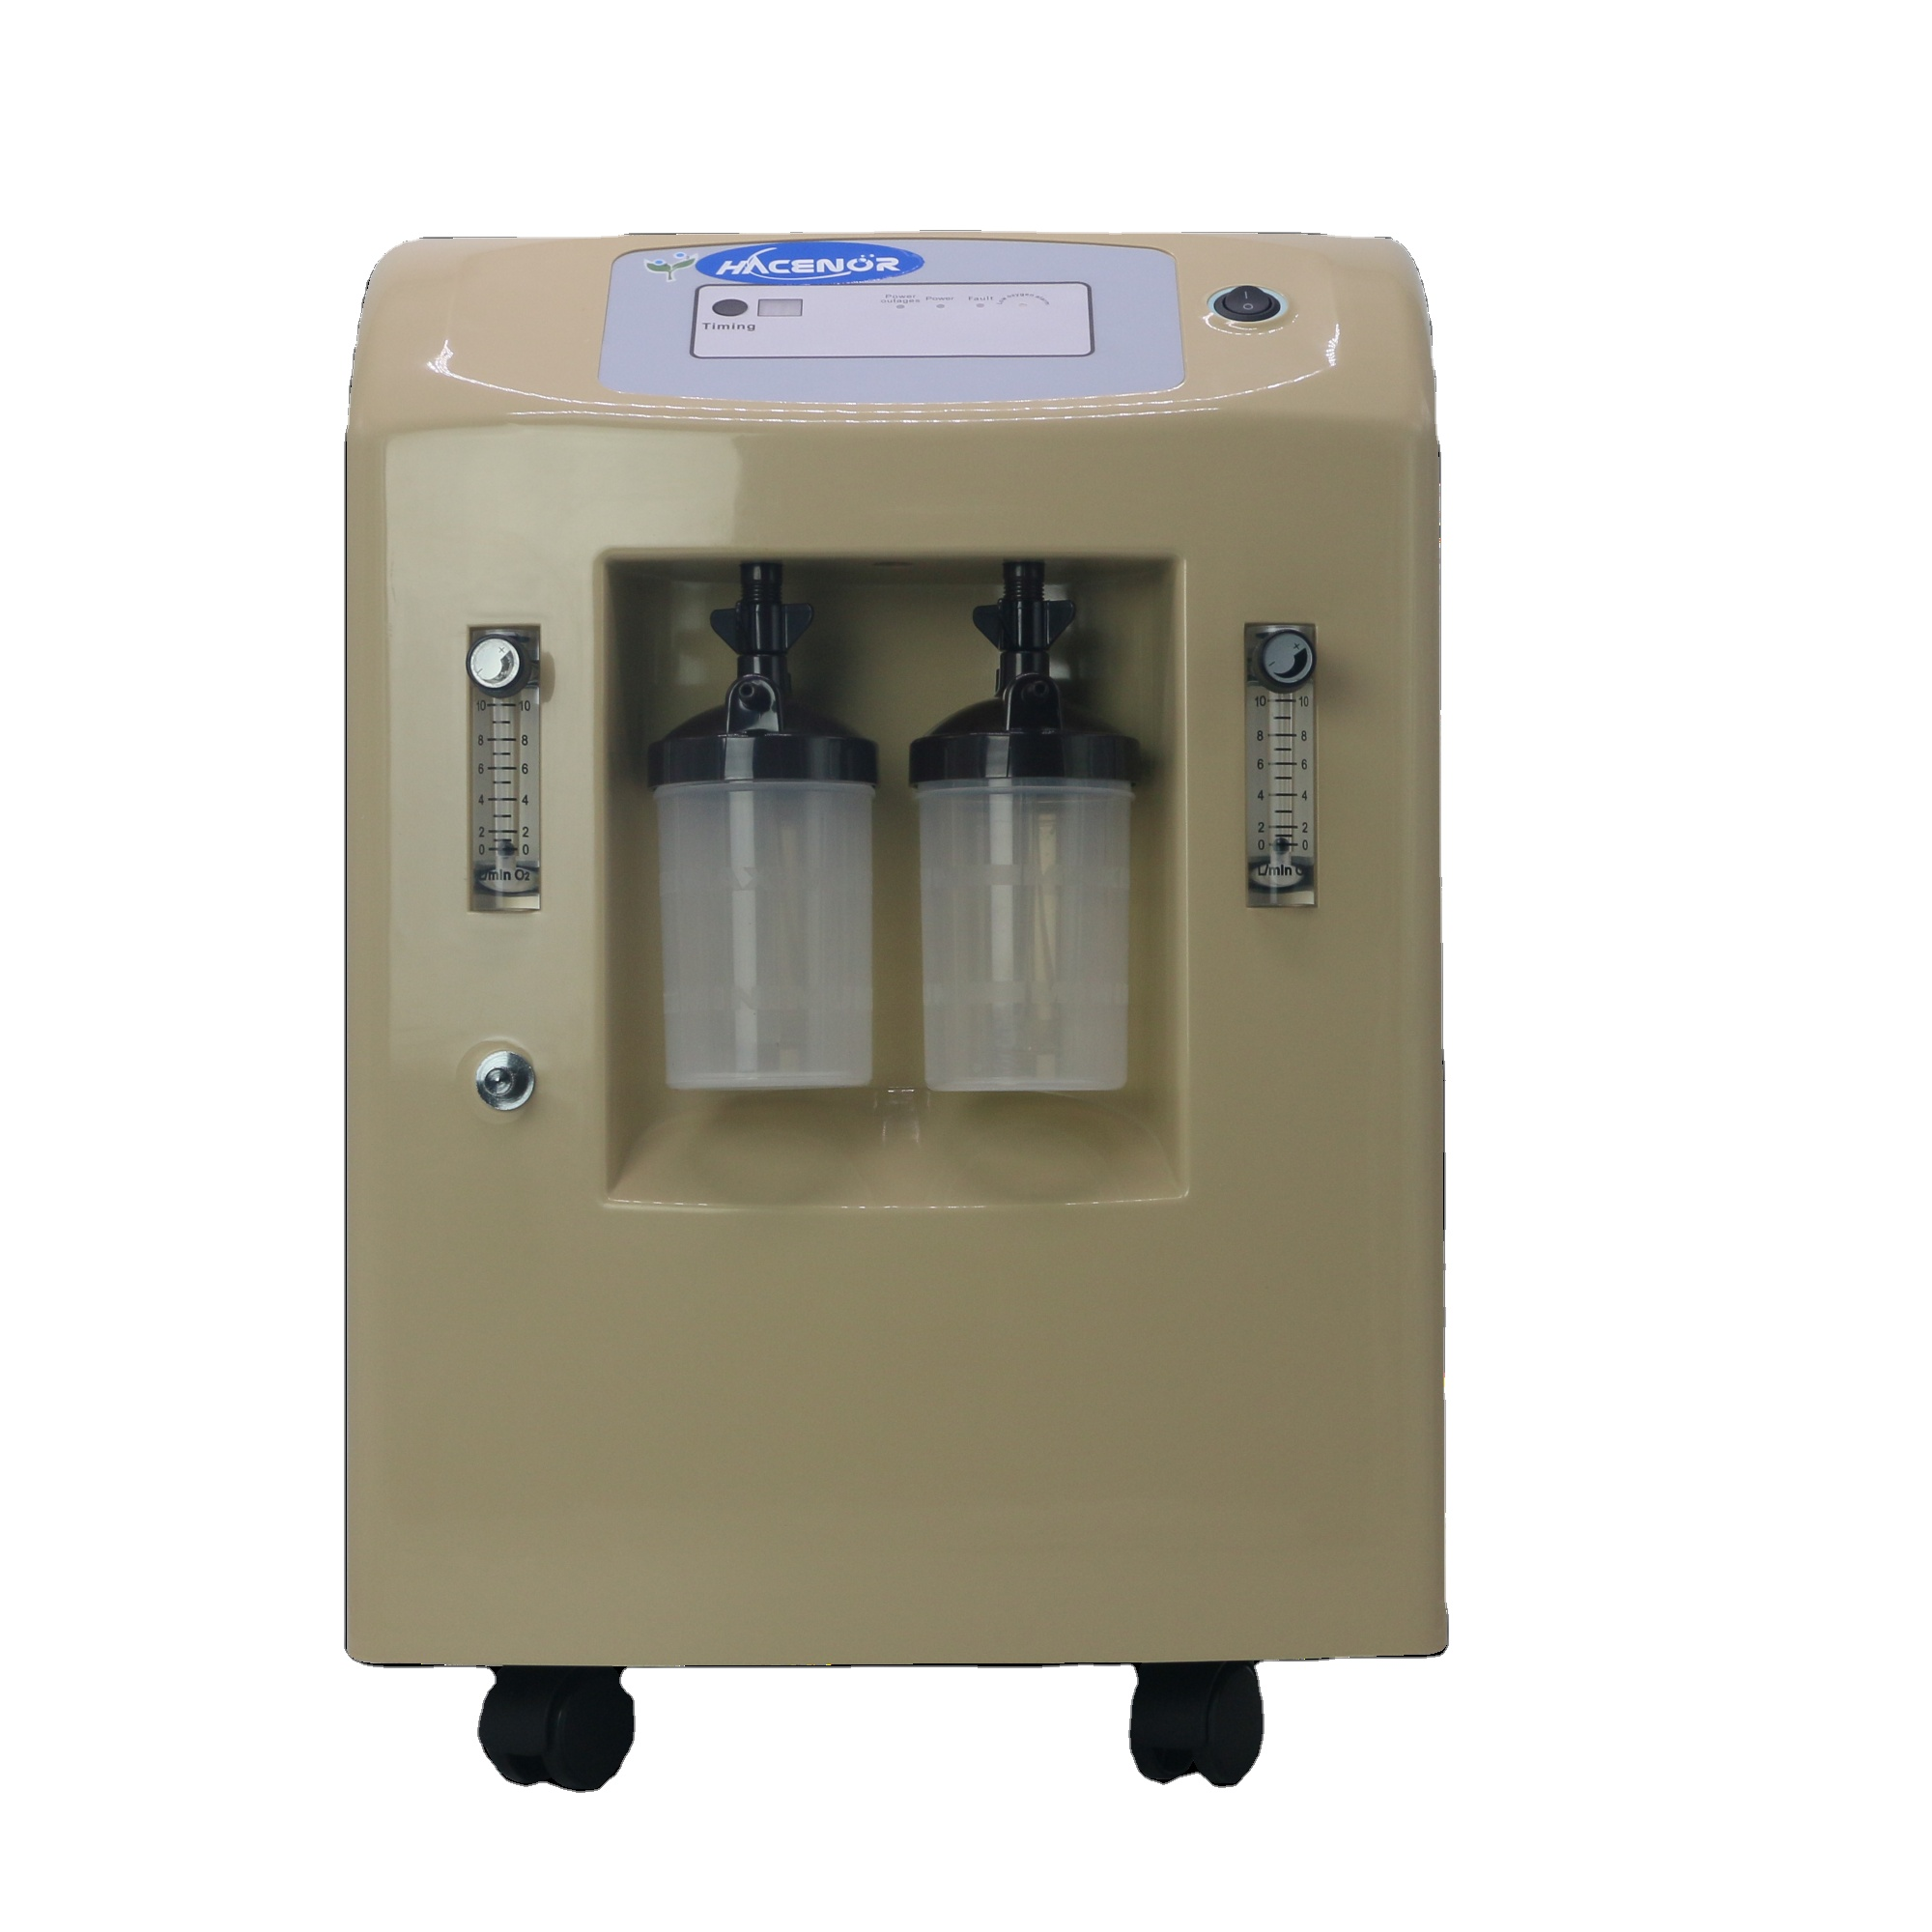 Hacenor home use medical concentrator oxygen dual user 10 l oxygen concentrator - KingCare   KingCare.net